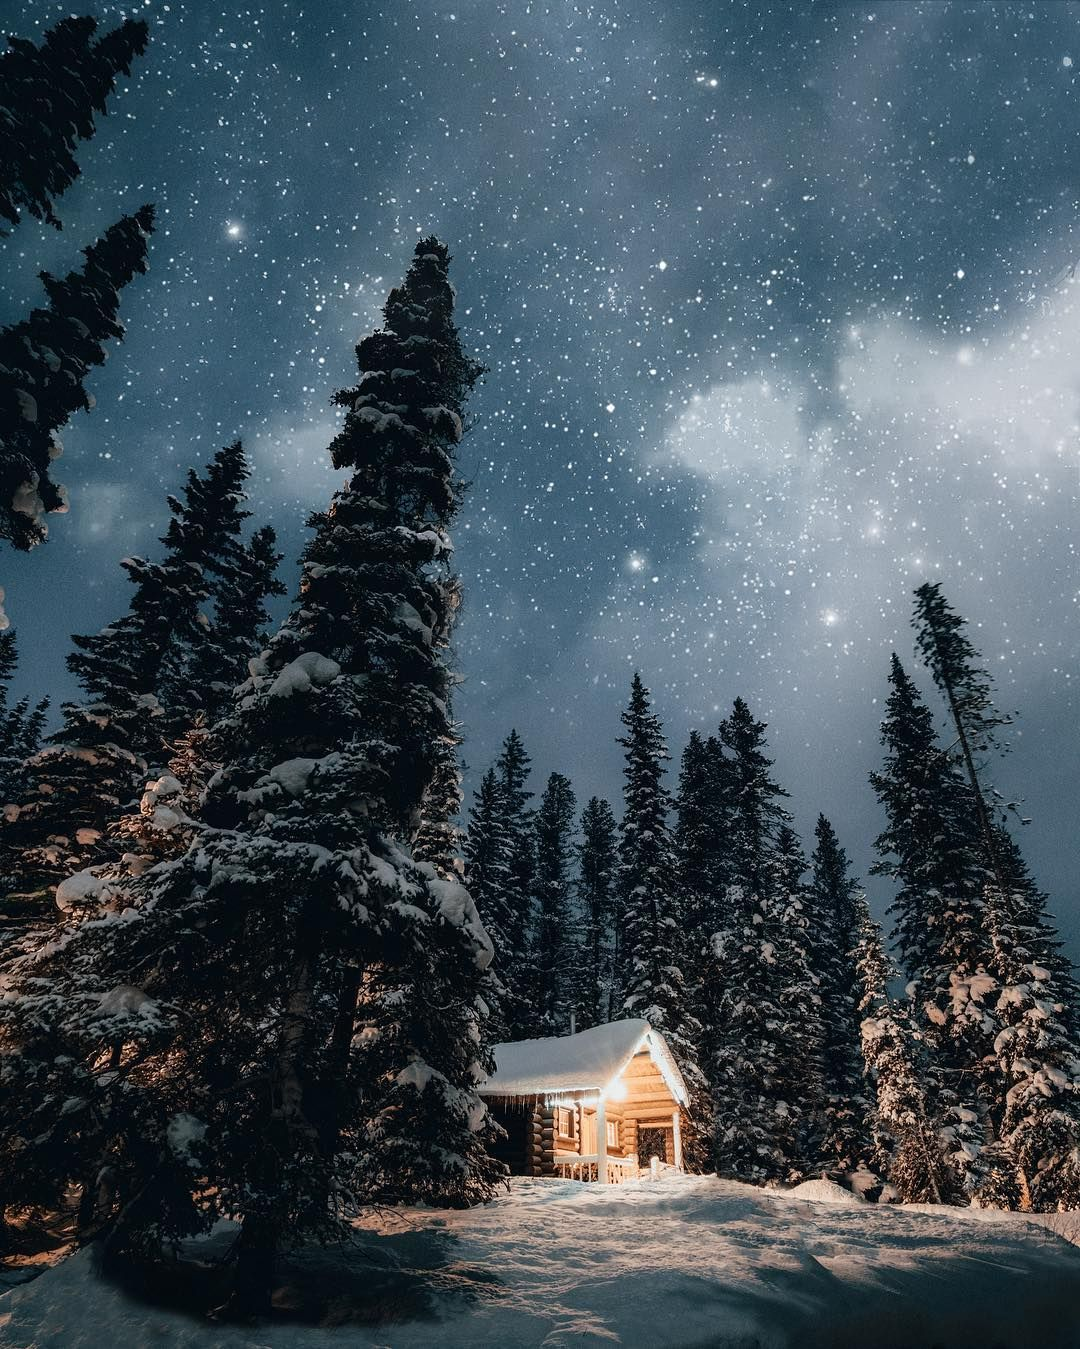 beautiful aesthetic cozy winter iphone wallpaper images